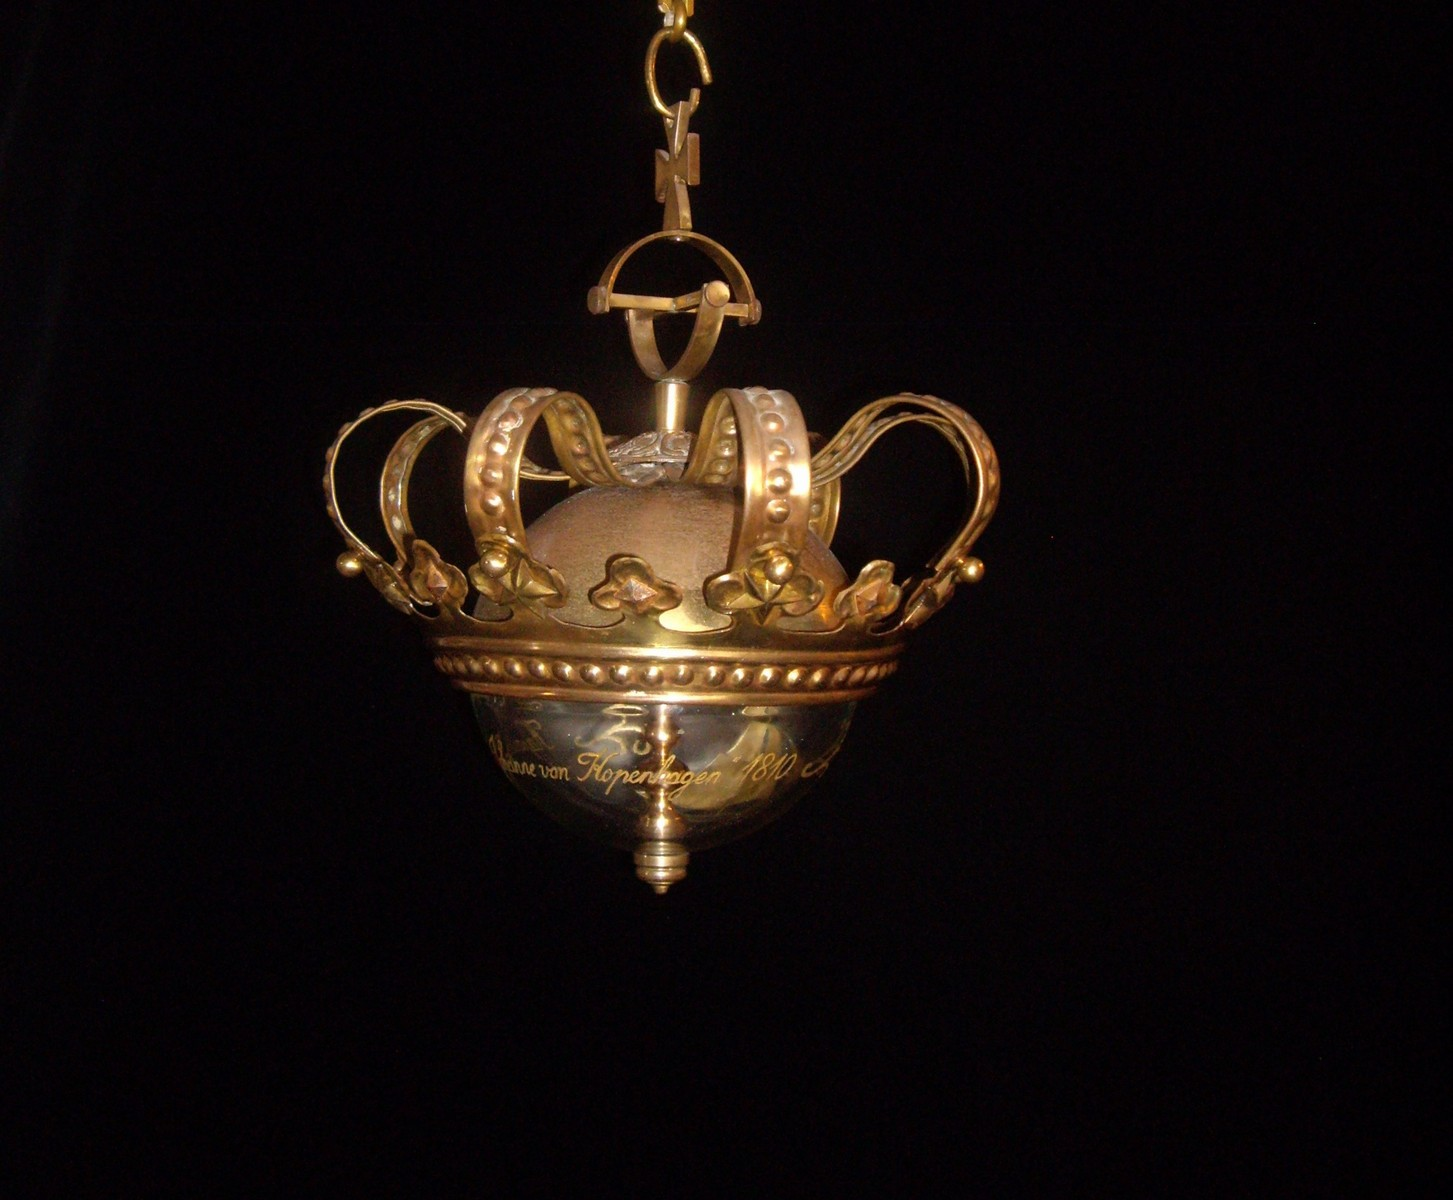 TELL-TALE CROWN COMPASS CA.1810